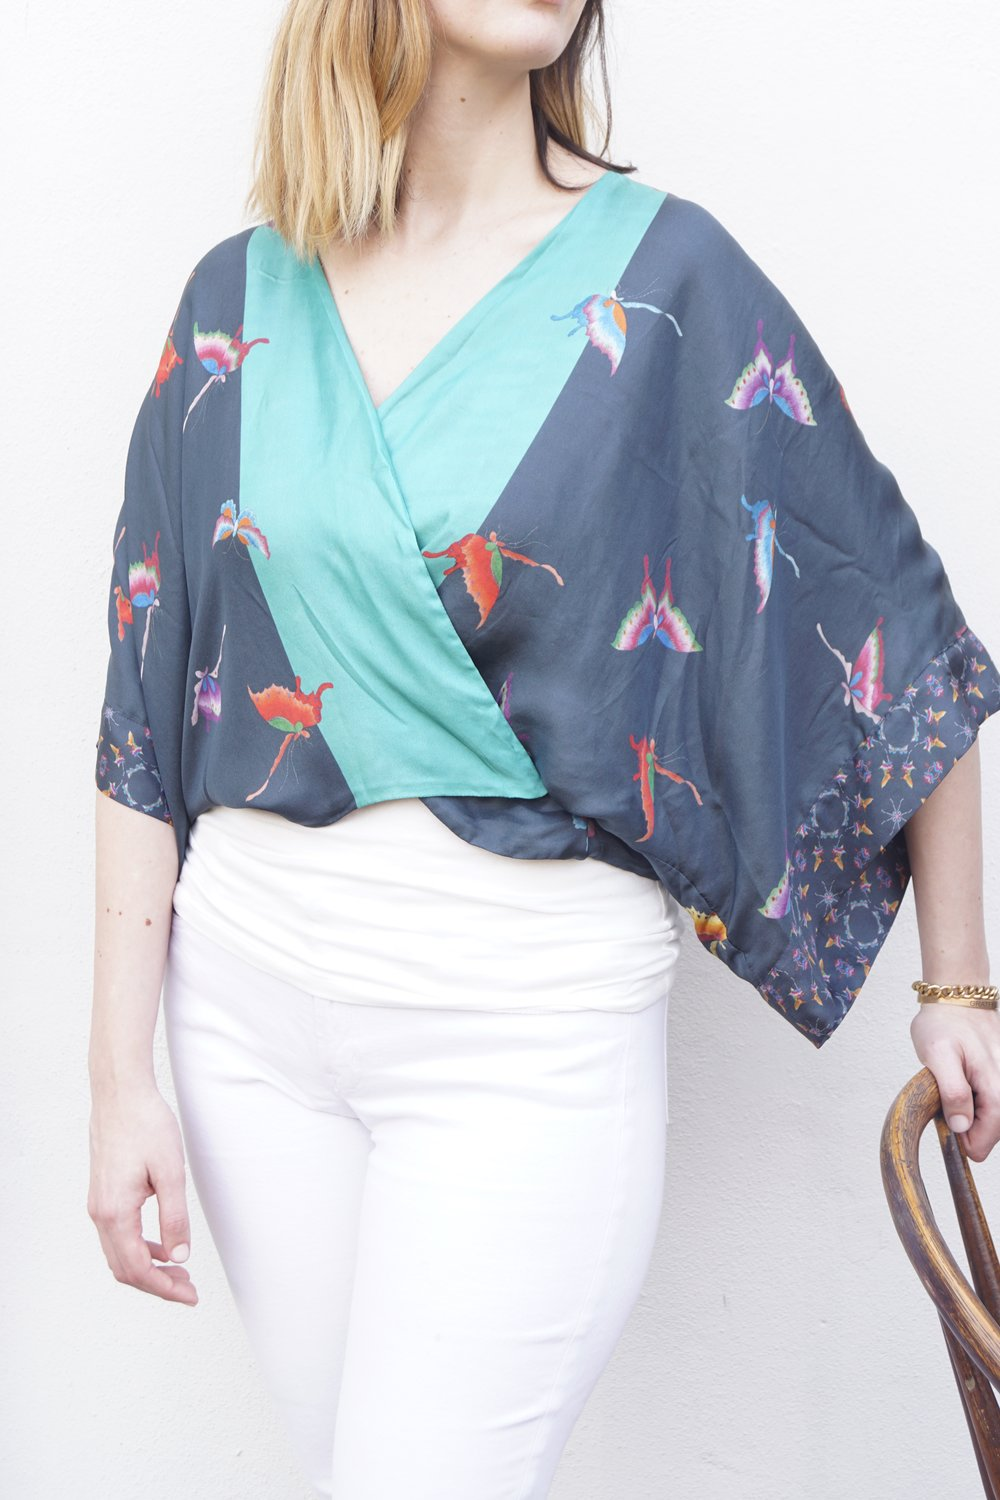 Silk Shrug for Spring